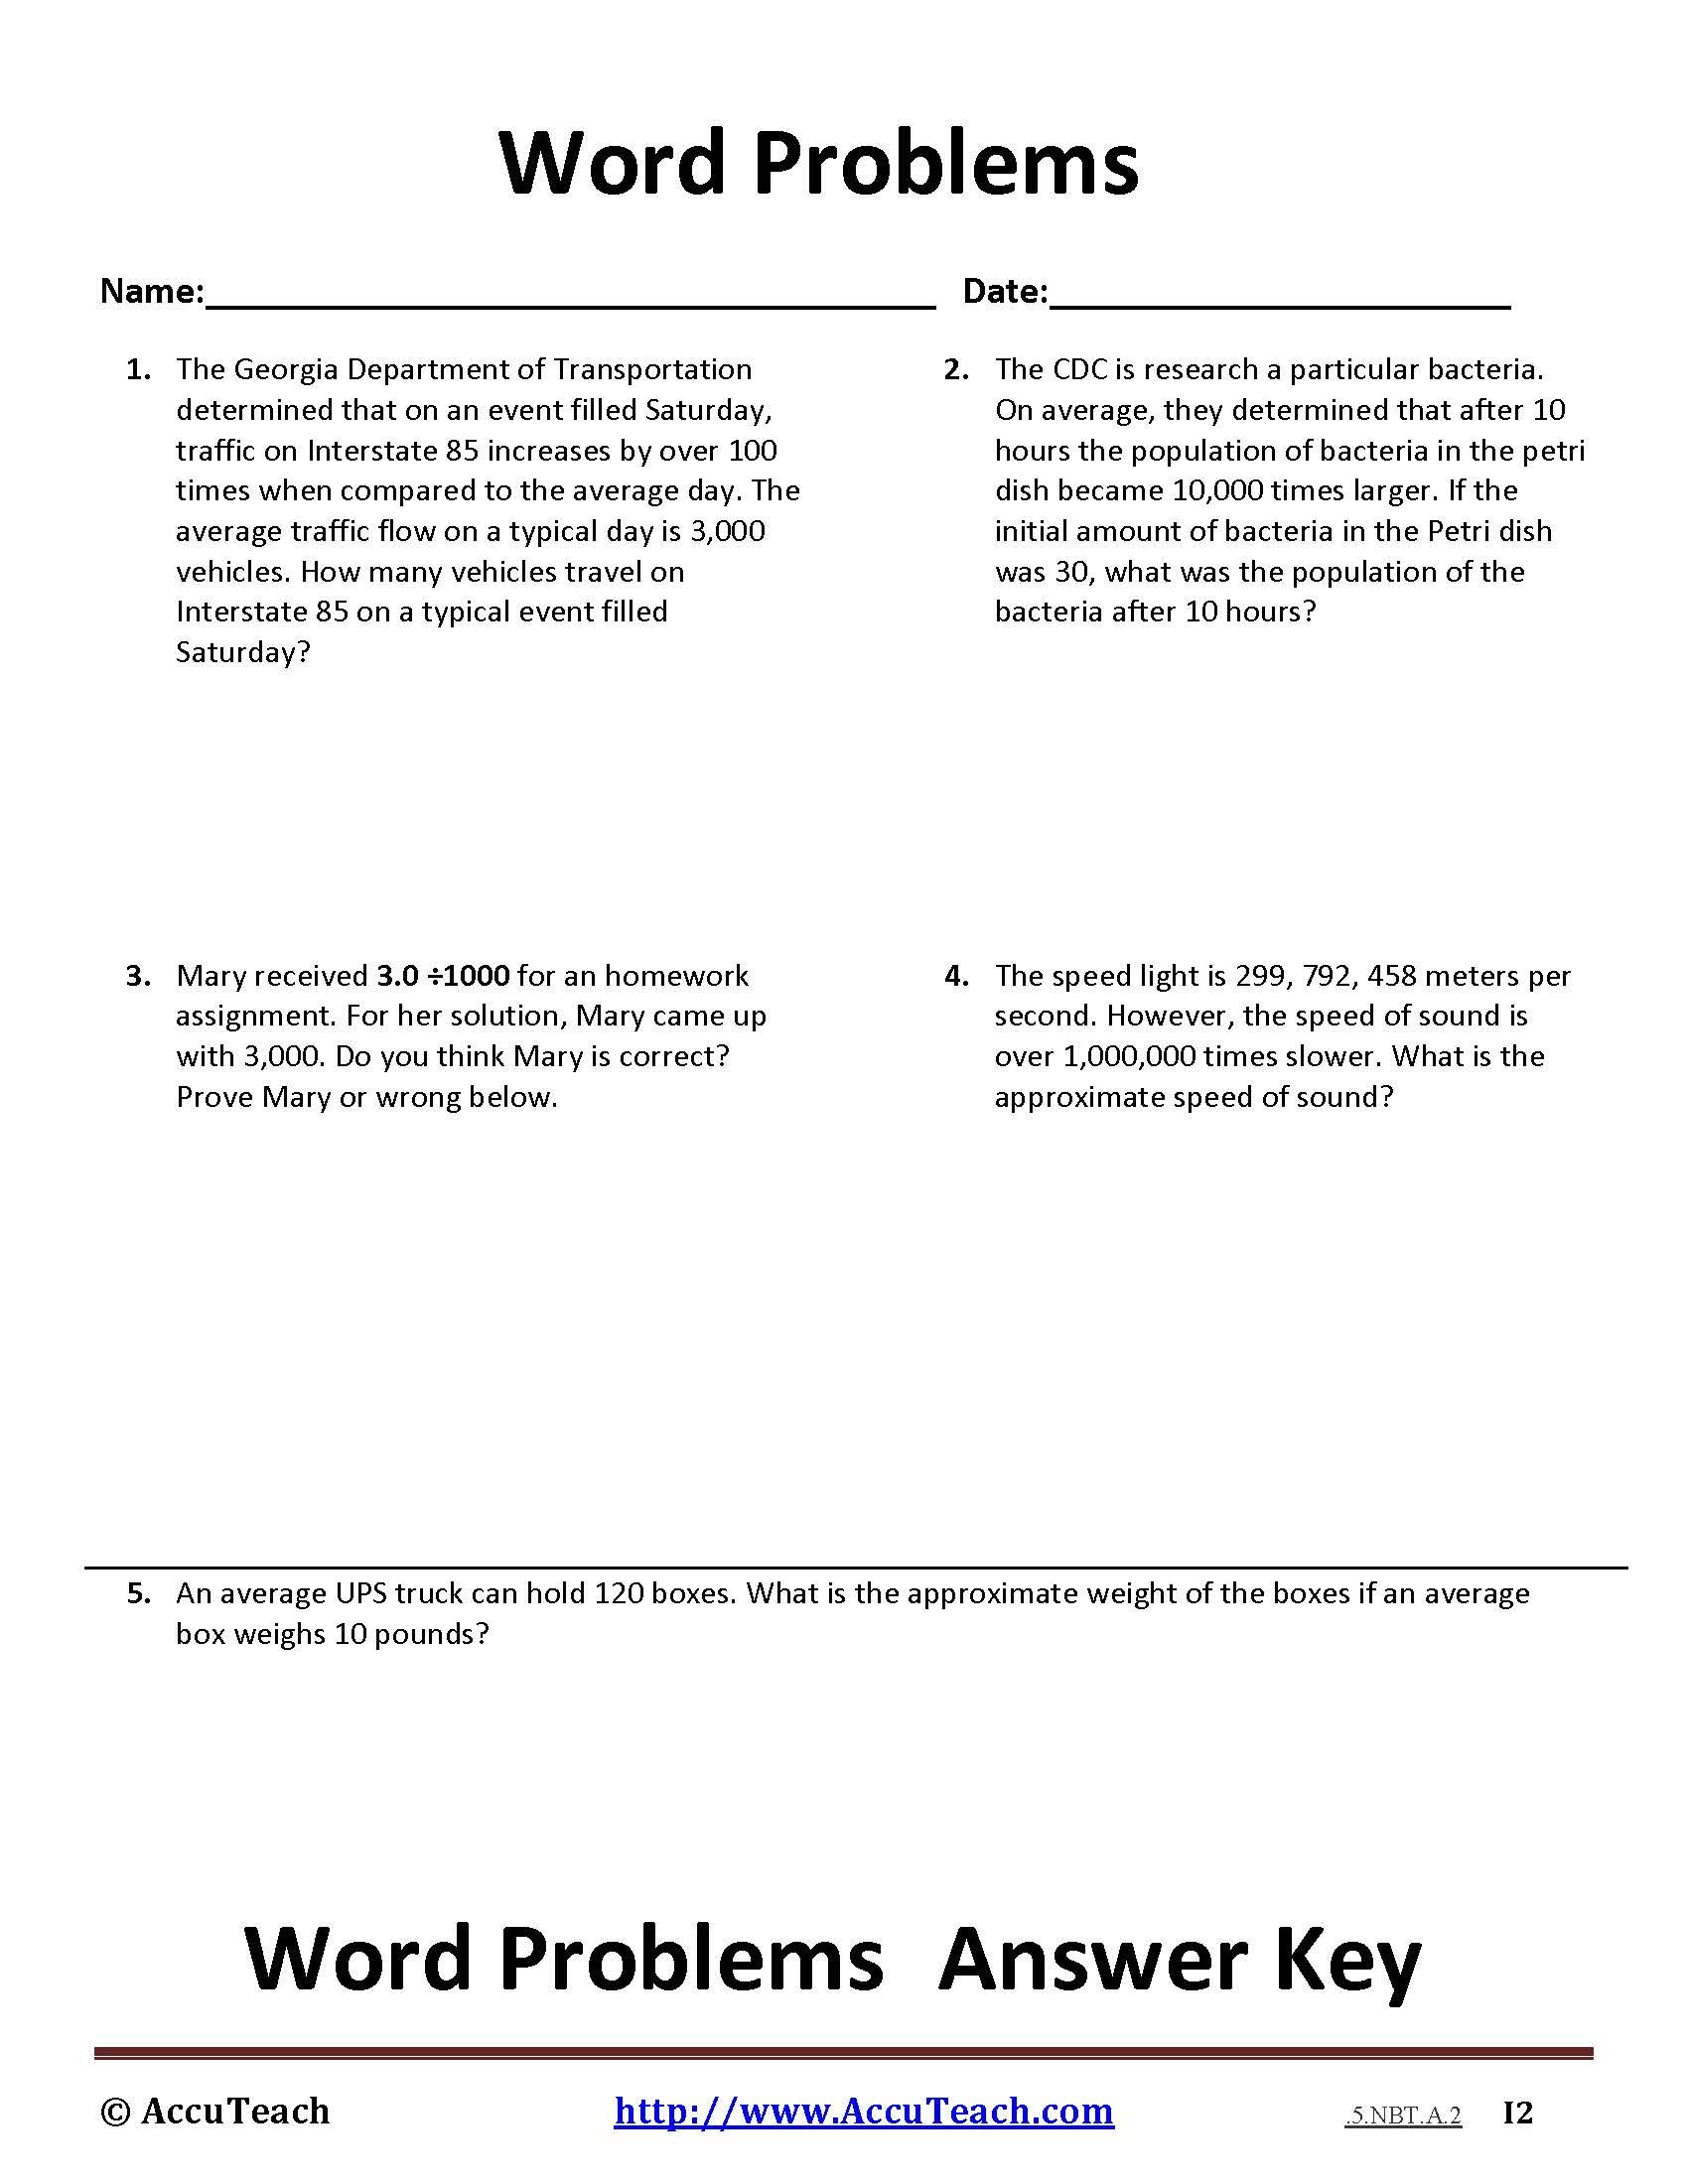 worksheet Powers Of Ten Worksheet 1 powers of ten word problem 5 nbt a 2 page education nbt